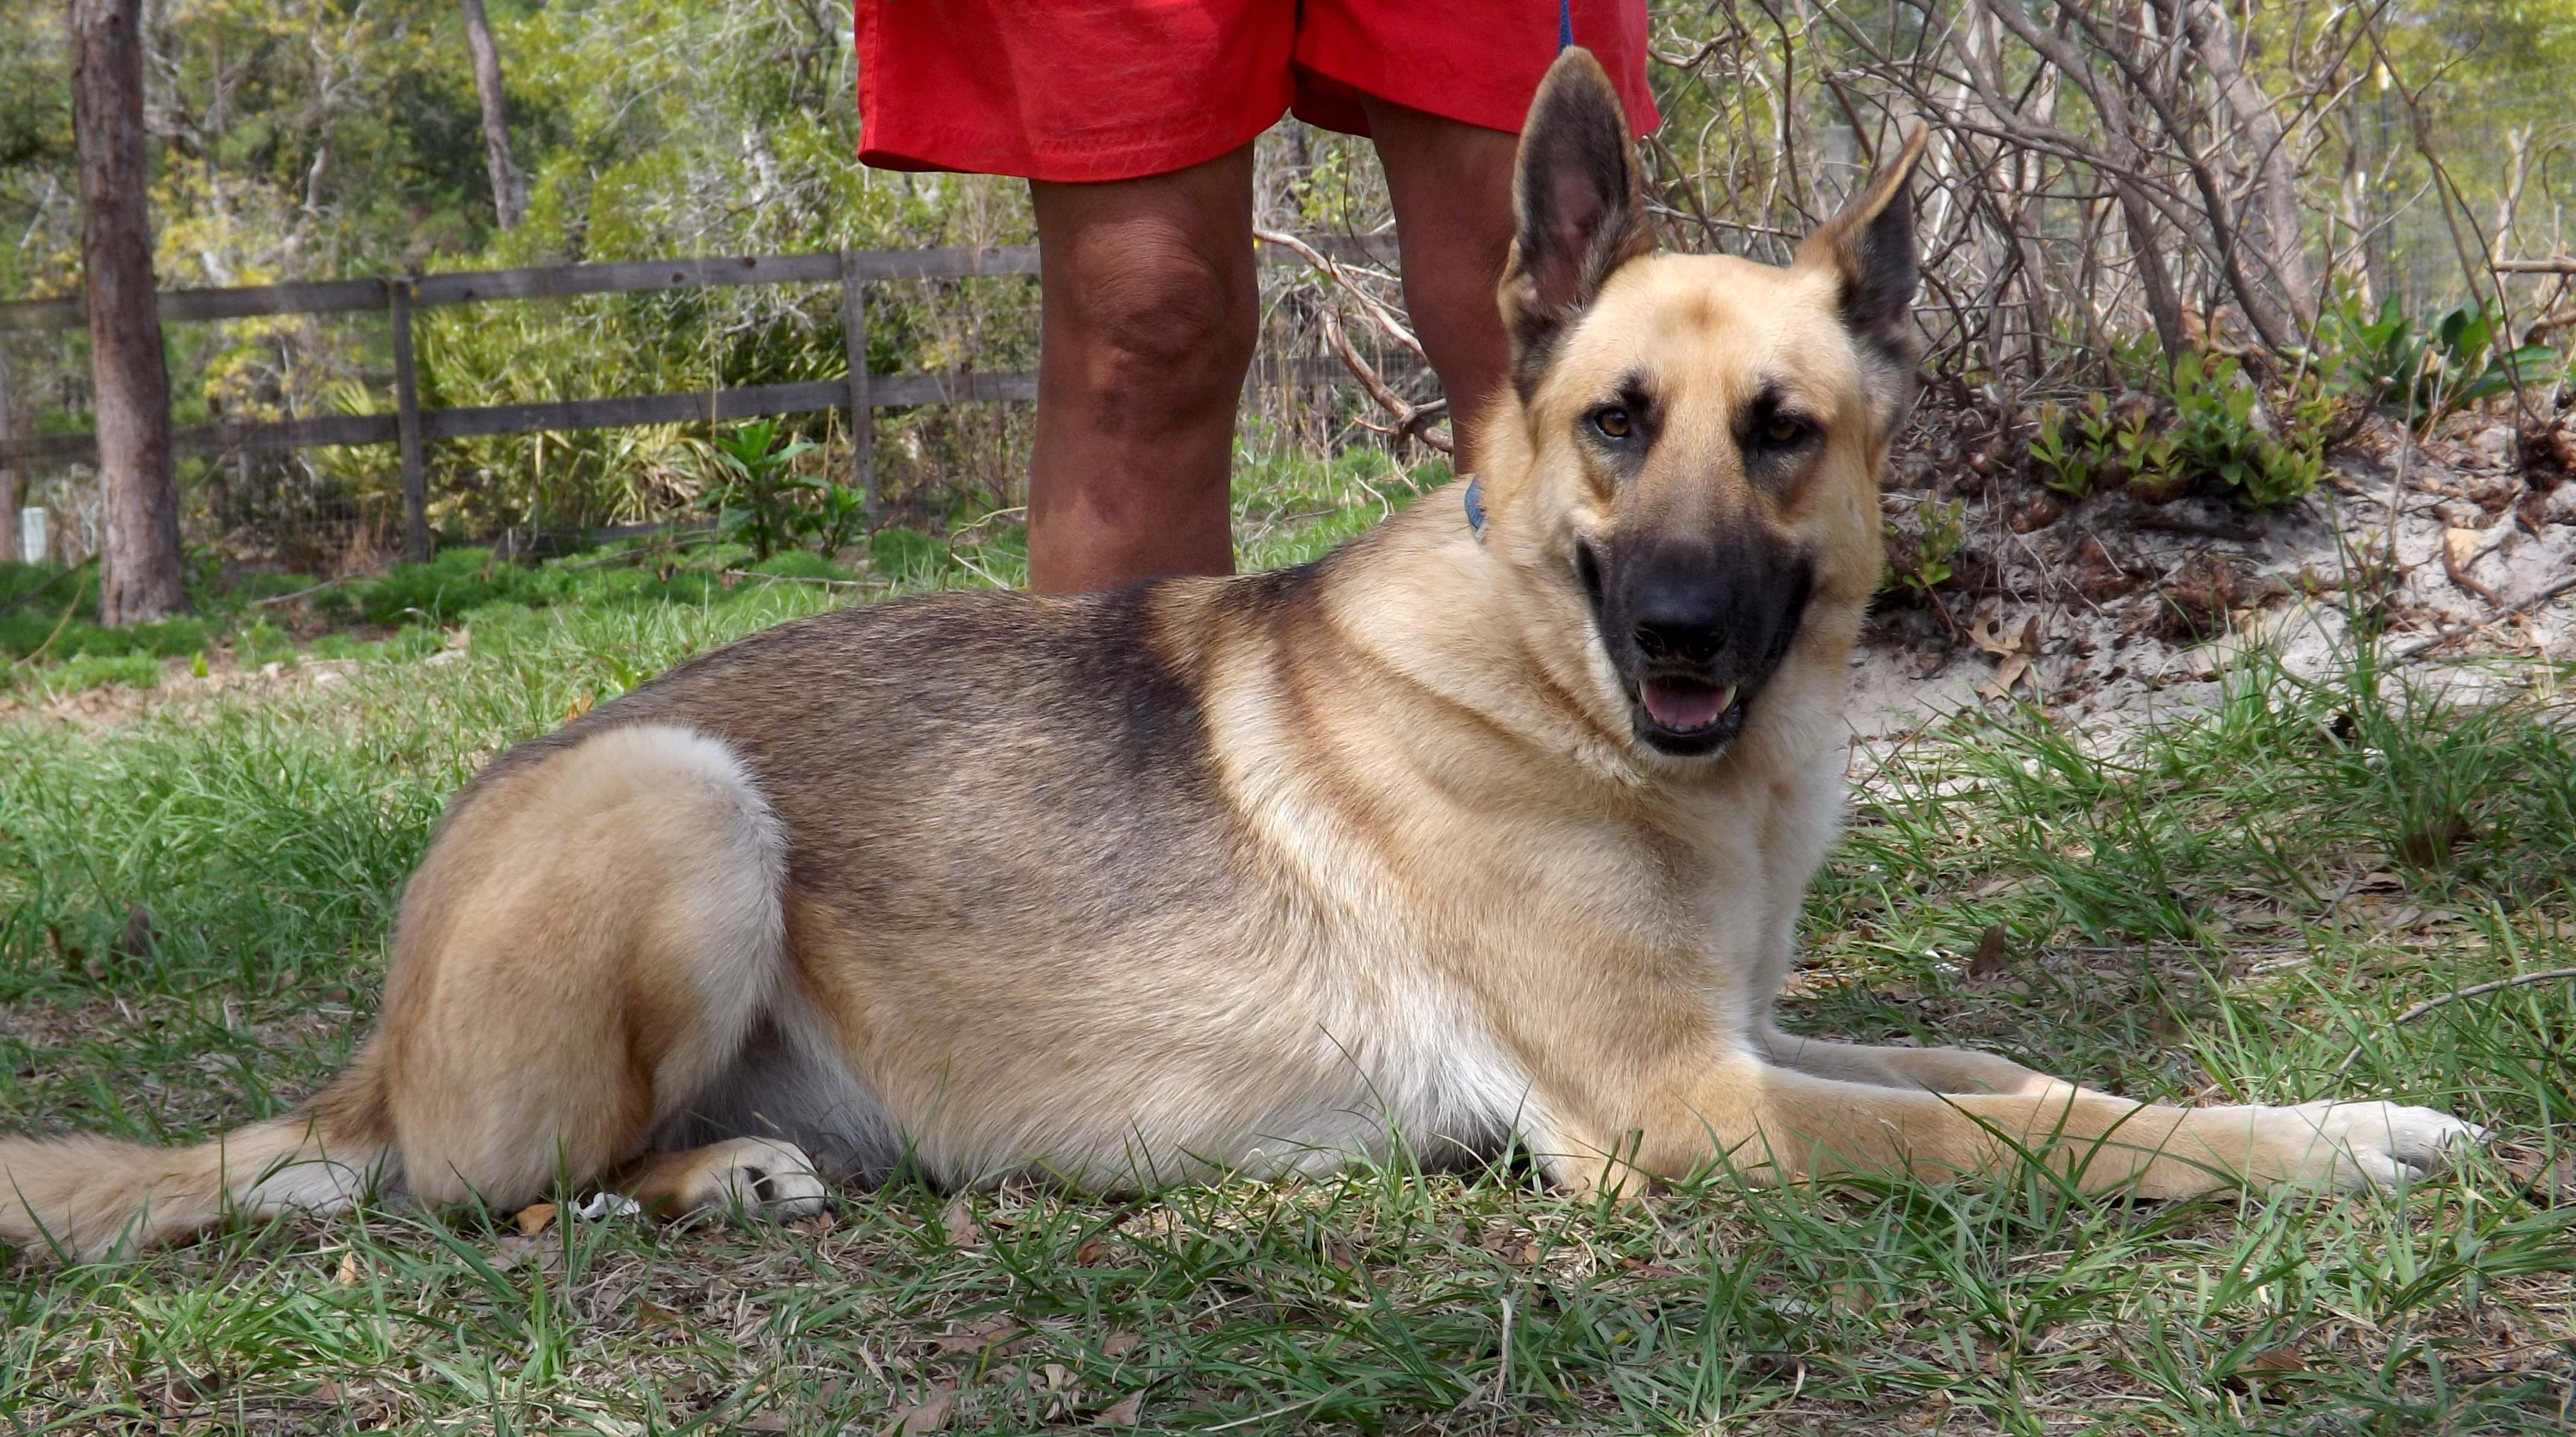 German Shepherd Dog dog for Adoption in Dunnellon, FL. ADN